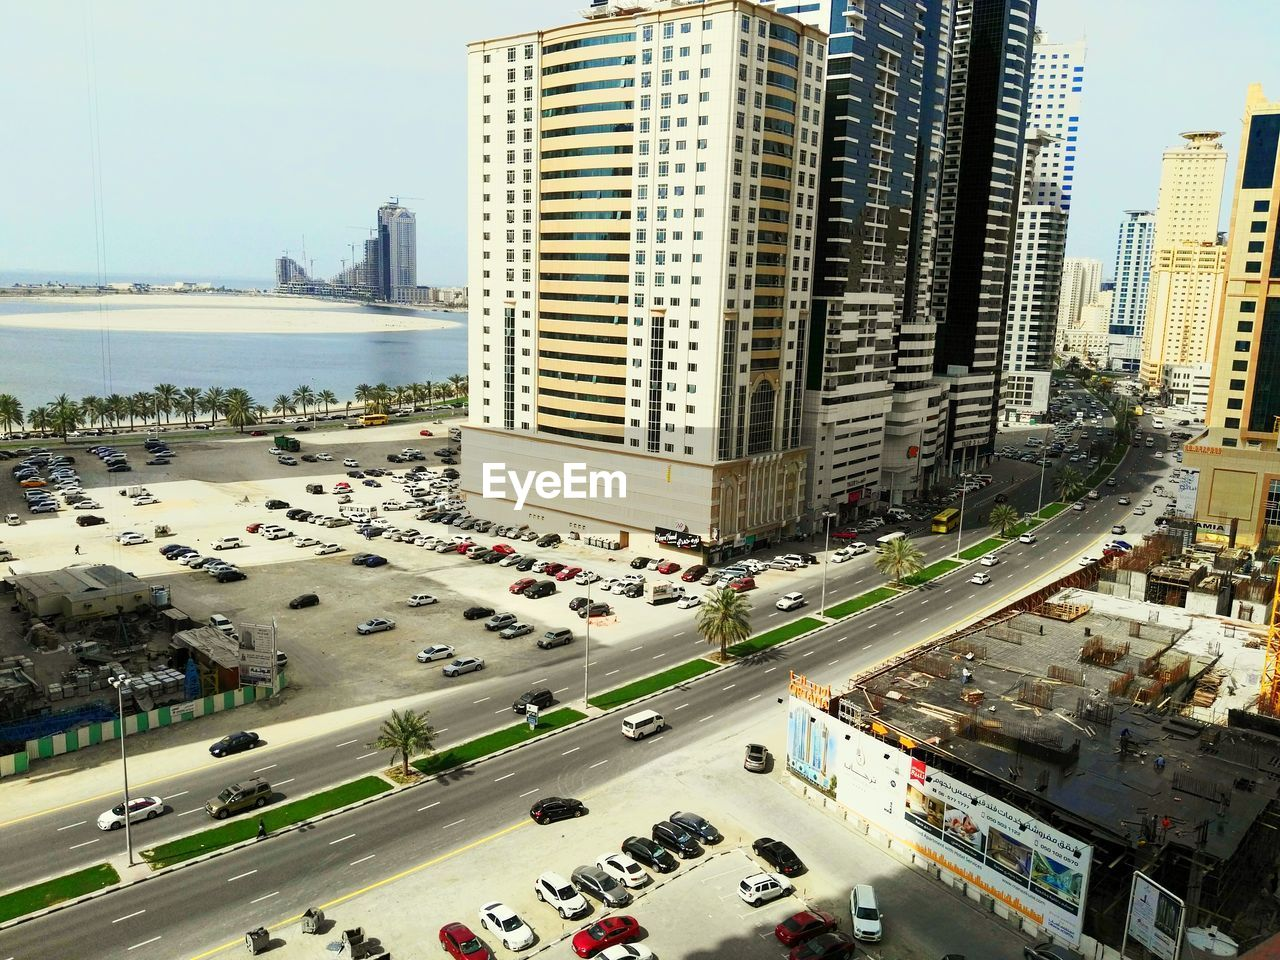 city, architecture, building exterior, skyscraper, high angle view, built structure, land vehicle, car, transportation, street, road, mode of transport, city life, outdoors, day, cityscape, downtown district, urban skyline, modern, tree, no people, sky